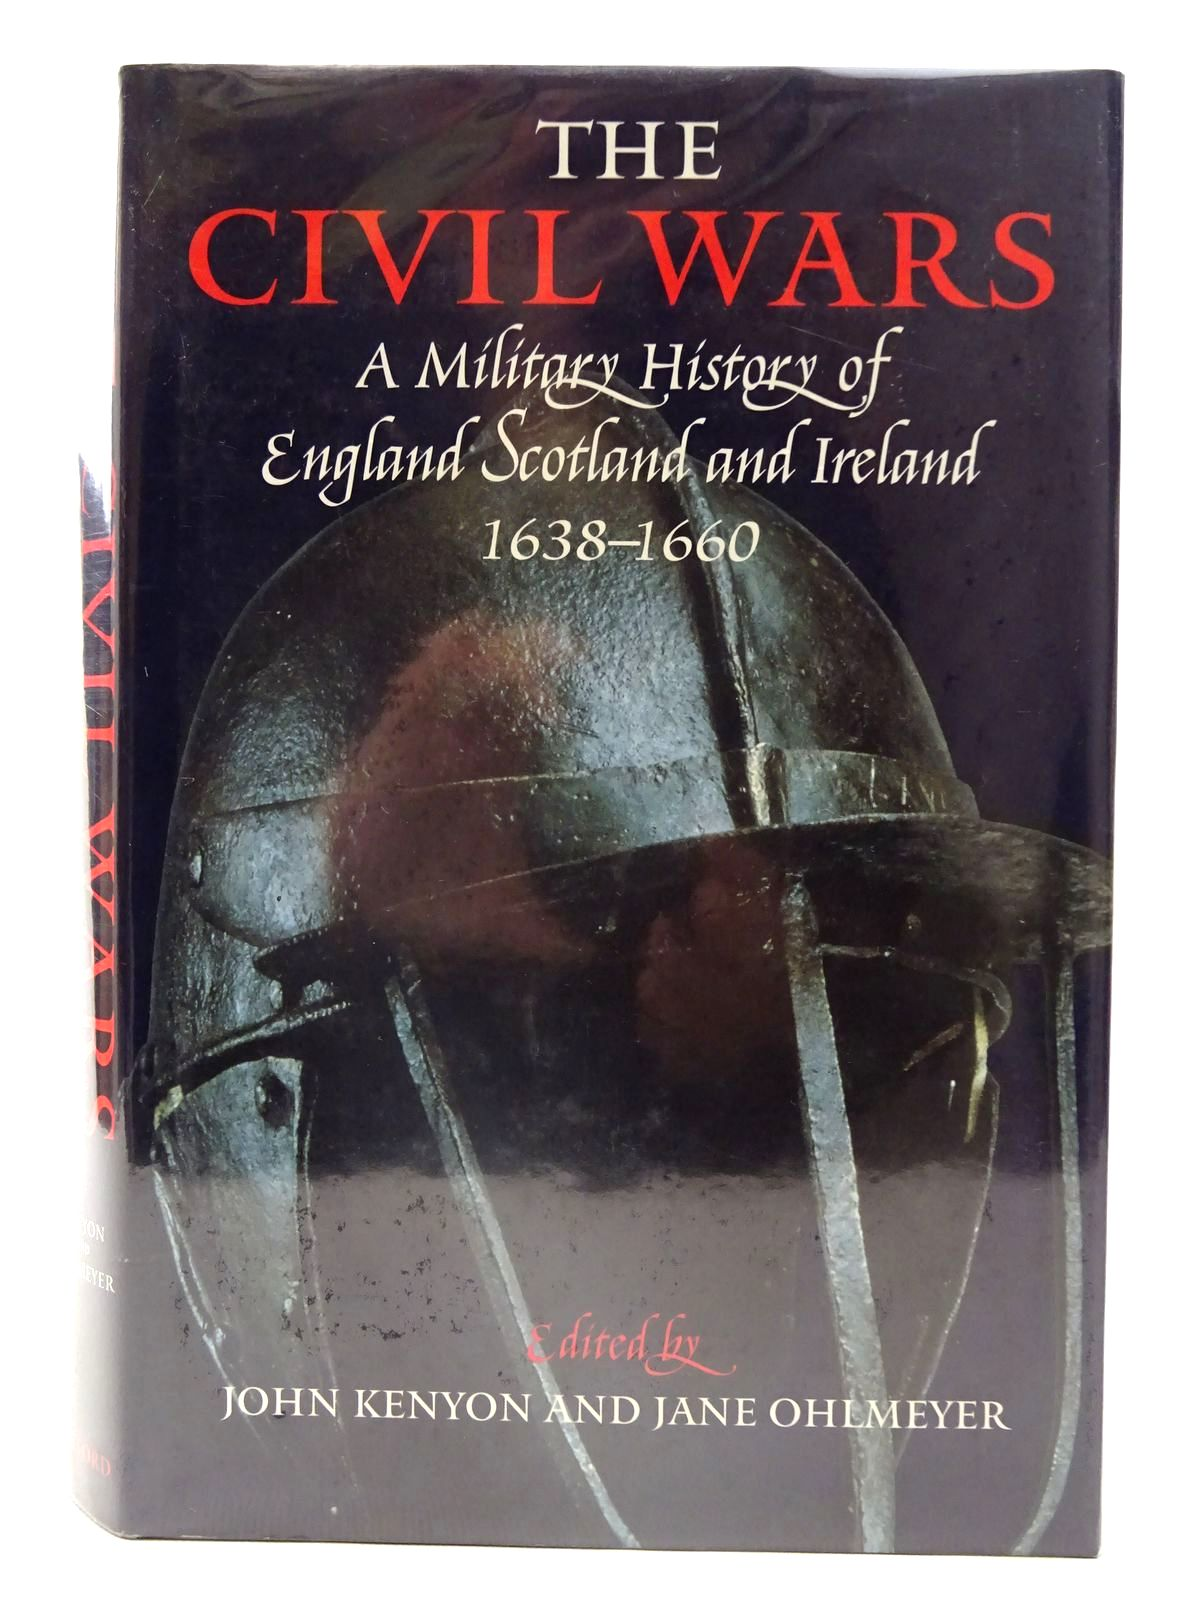 Photo of THE CIVIL WARS A MILITARY HISTORY OF ENGLAND, SCOTLAND, AND IRELAND 1638-1660 written by Kenyon, John<br />Ohlmeyer, Jane published by Oxford University Press (STOCK CODE: 2126201)  for sale by Stella & Rose's Books